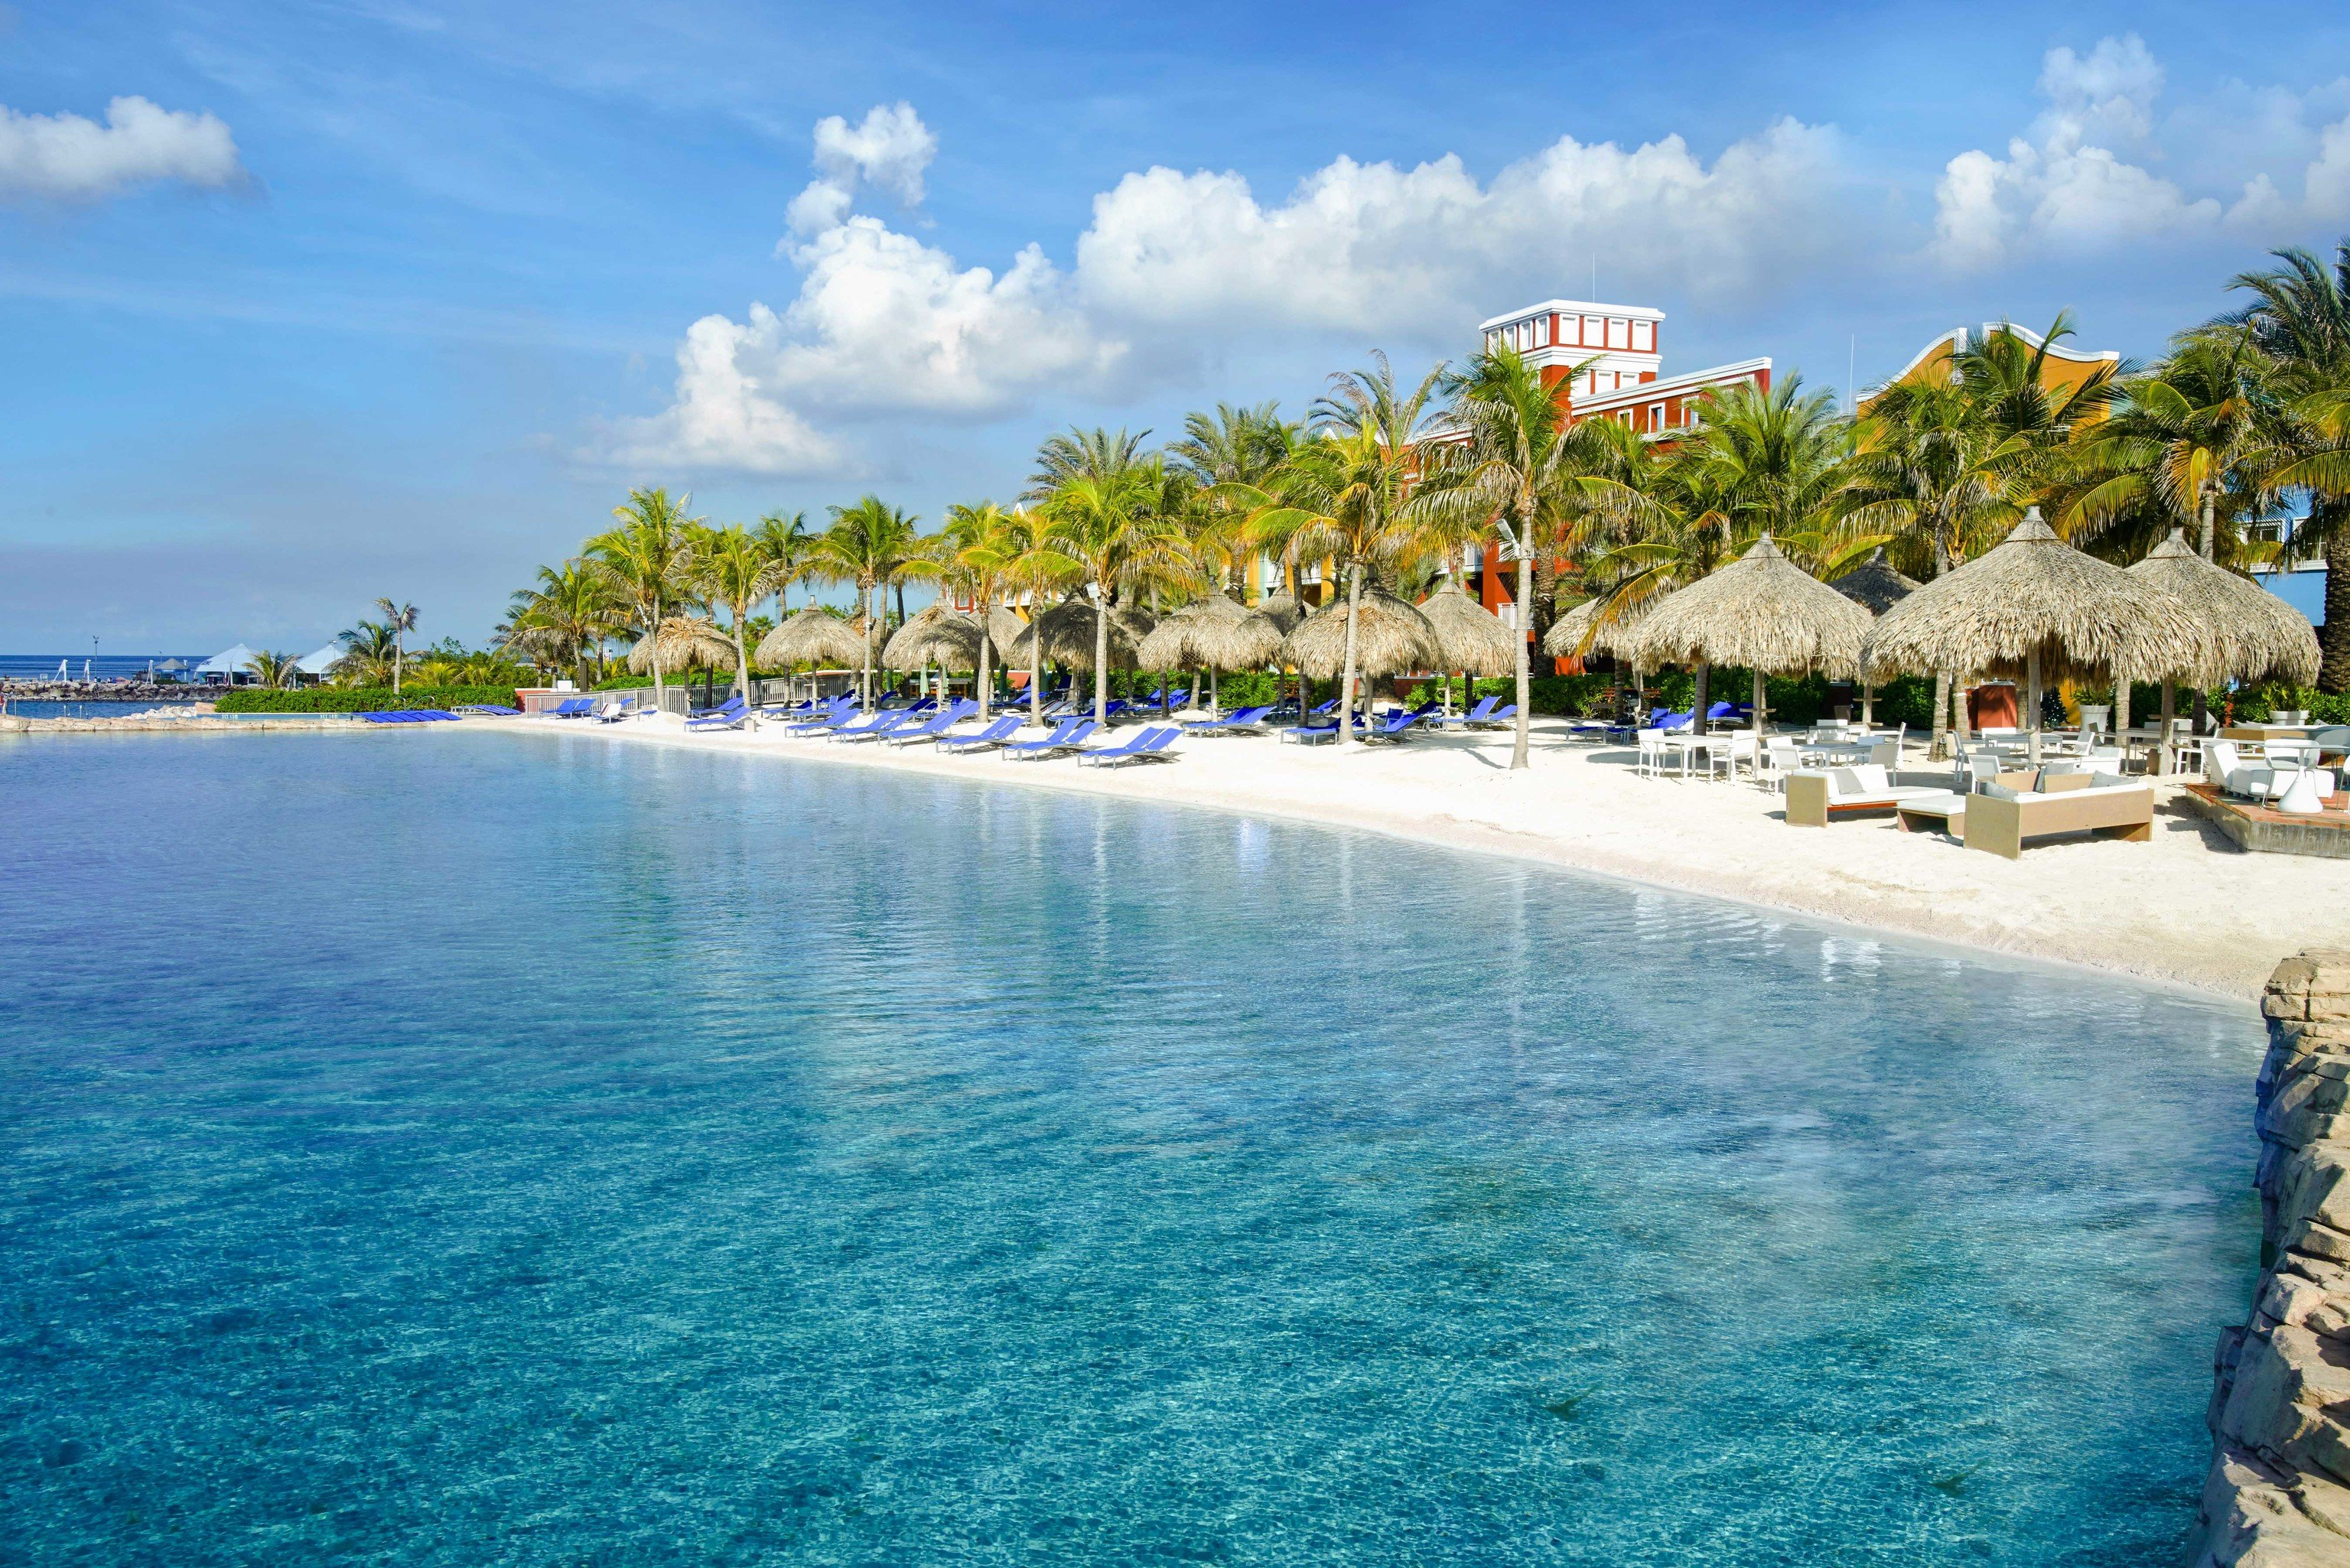 Boutique Hotels Romantic Getaways Romantic Hotels sky water outdoor Resort caribbean coastal and oceanic landforms tropics Sea Nature swimming pool leisure vacation resort town tourism palm tree Ocean bay shore Lagoon Island arecales Coast reef Beach cay tree cloud lined swimming day